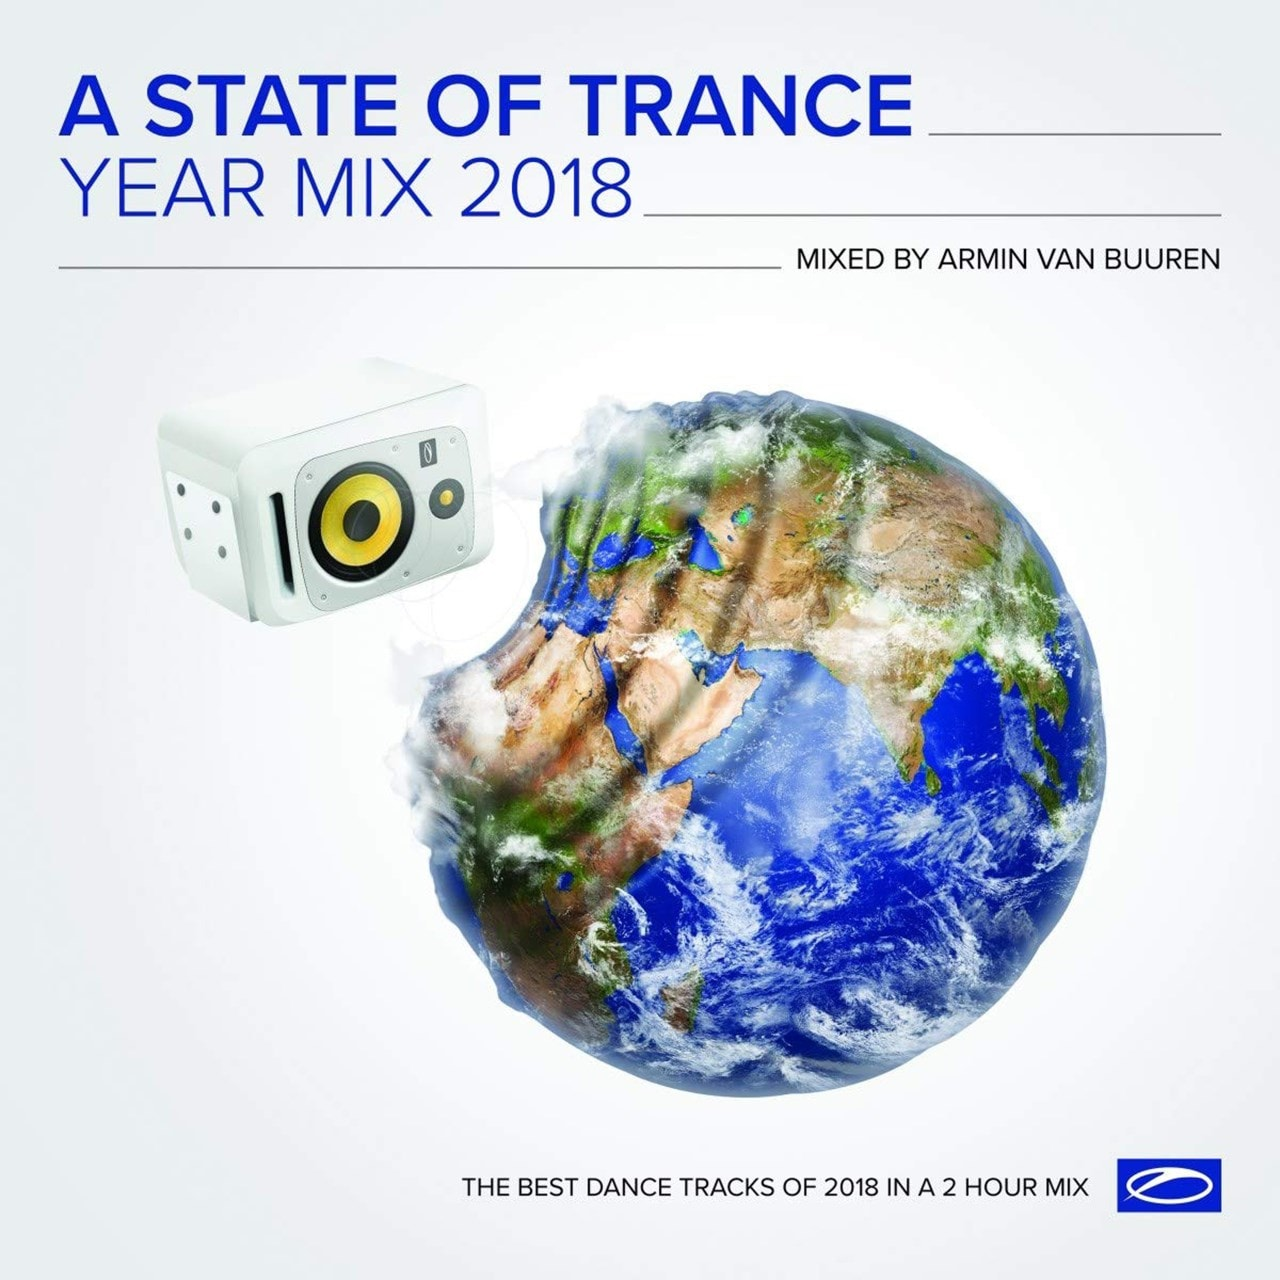 A State of Trance: Year Mix 2018 - 1